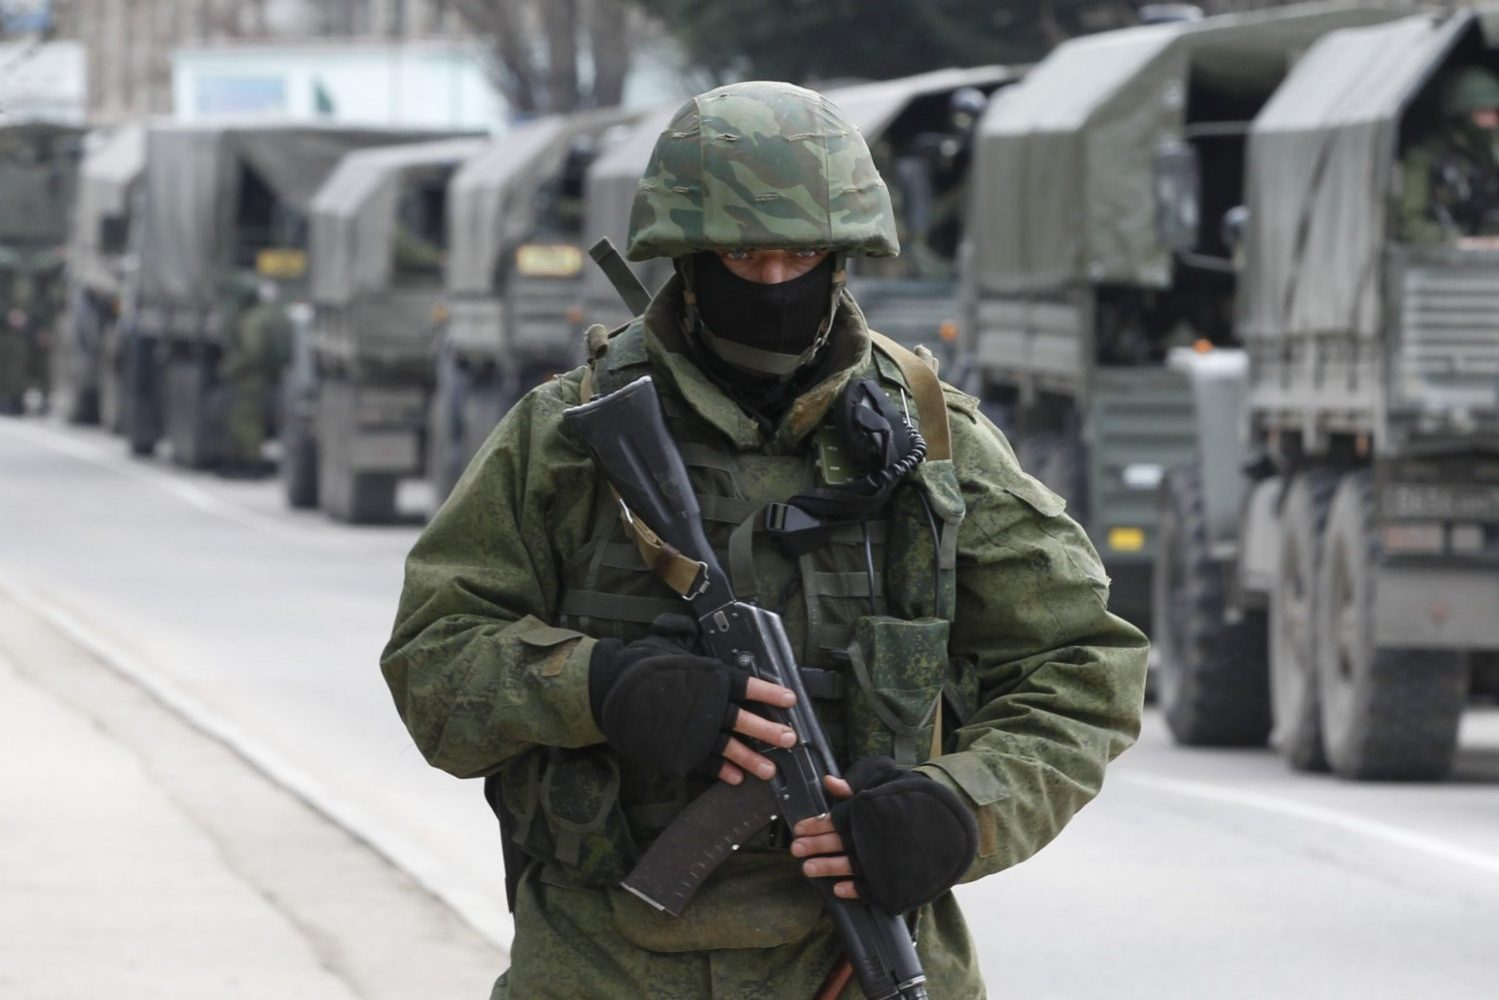 One million passports: Putin has weaponized citizenship in occupied eastern Ukraine